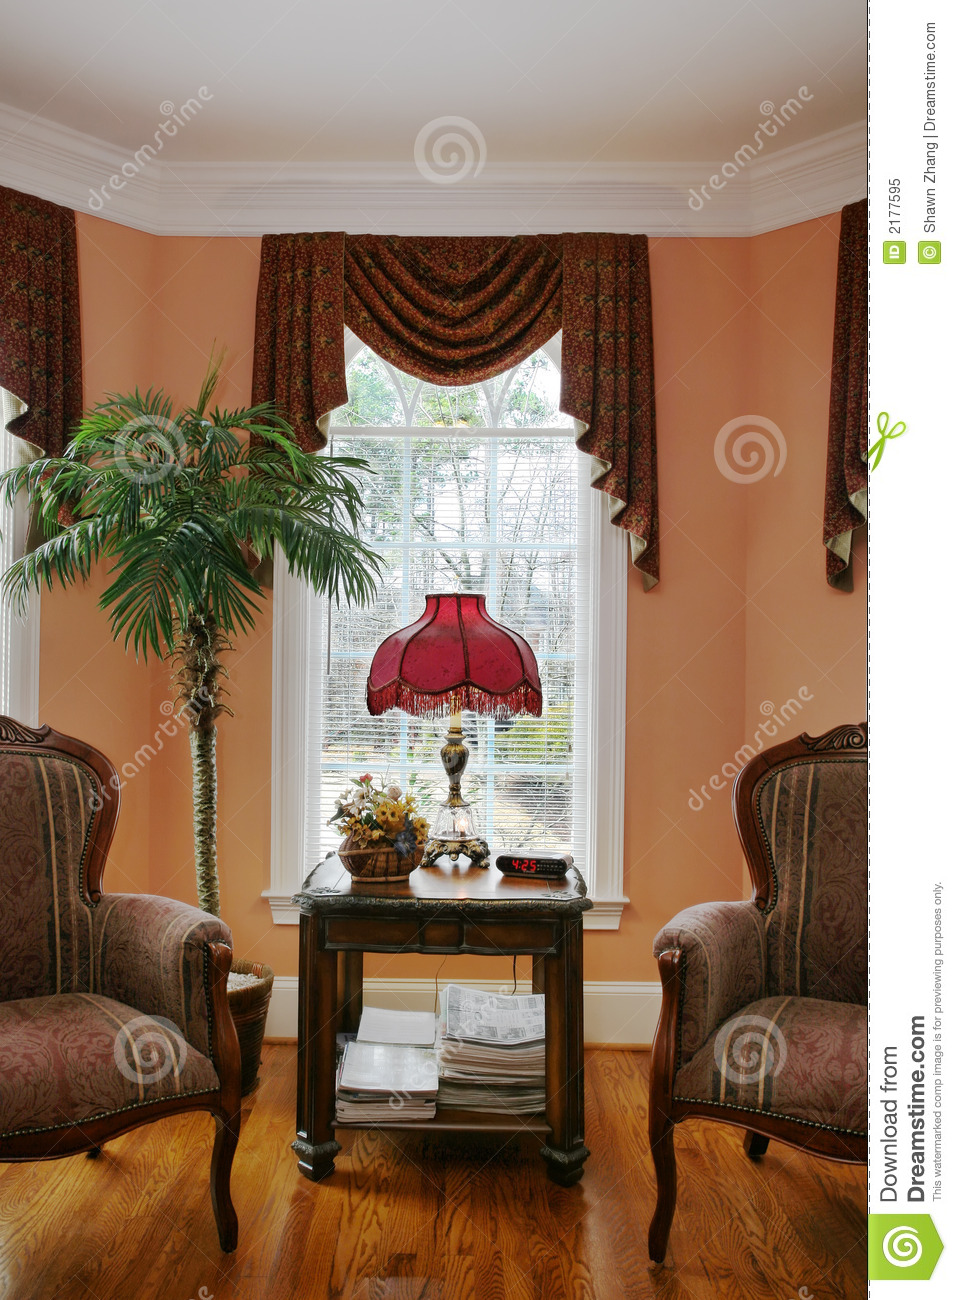 Living Room With Bay Window Royalty Free Stock Photo Image 2177595